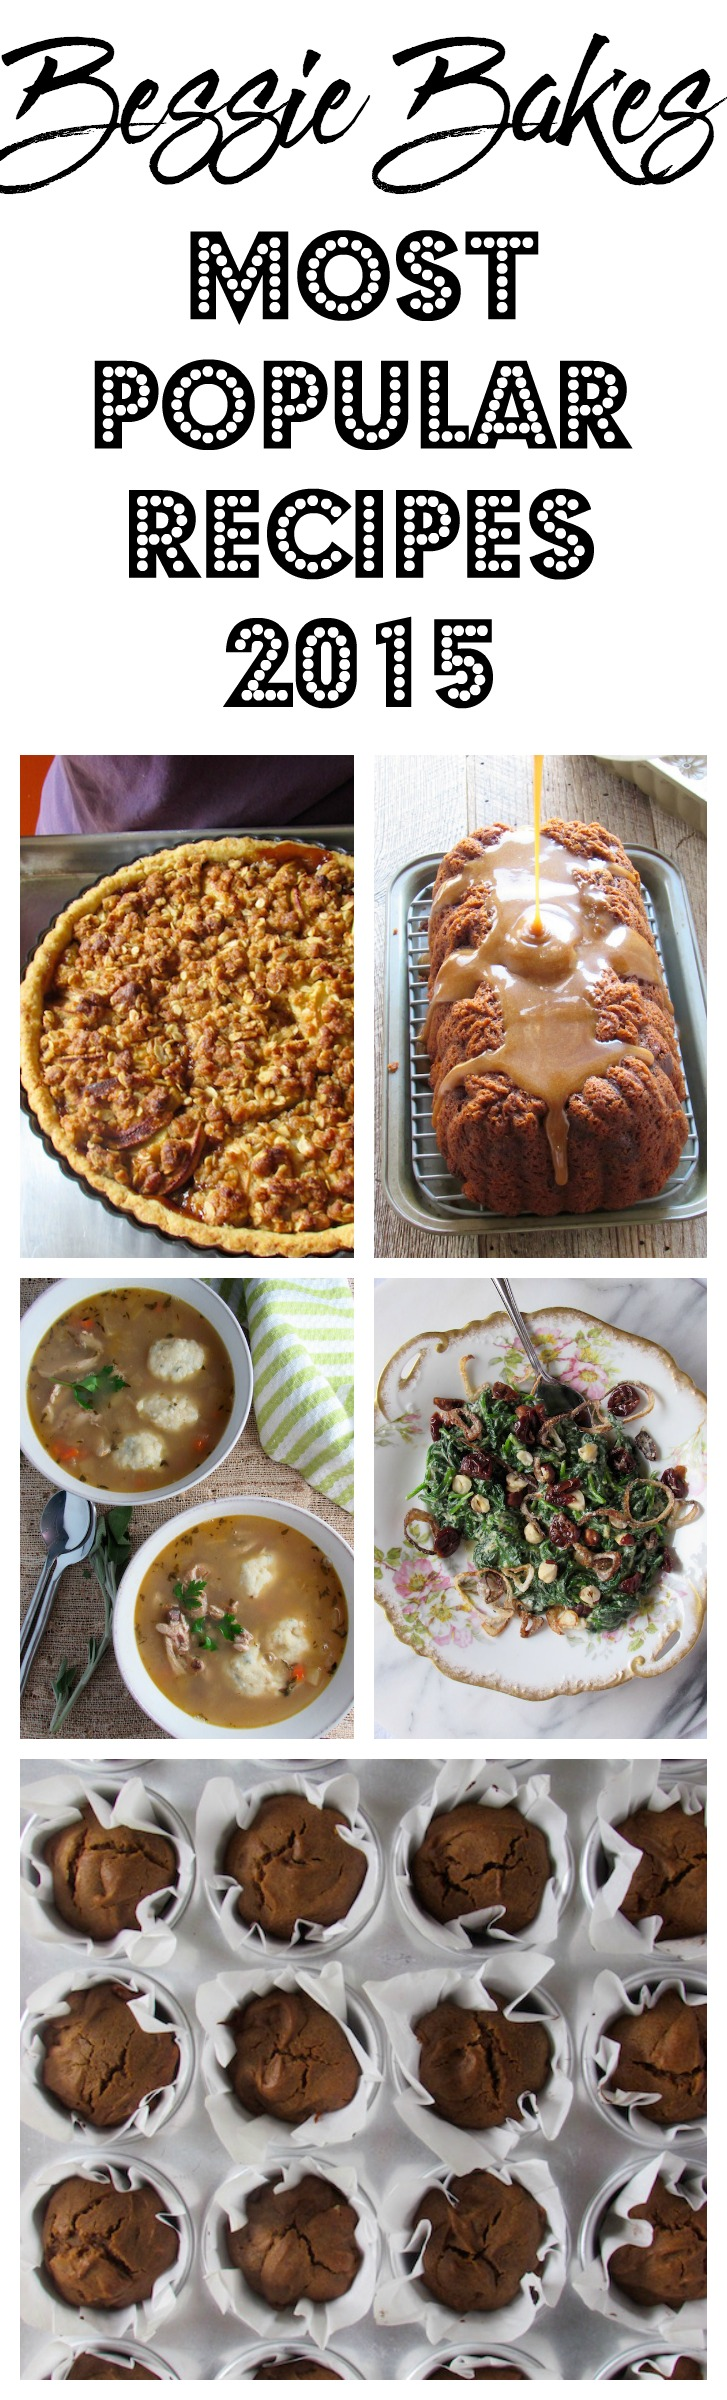 Bessie Bakes Most Popular Recipes 2015